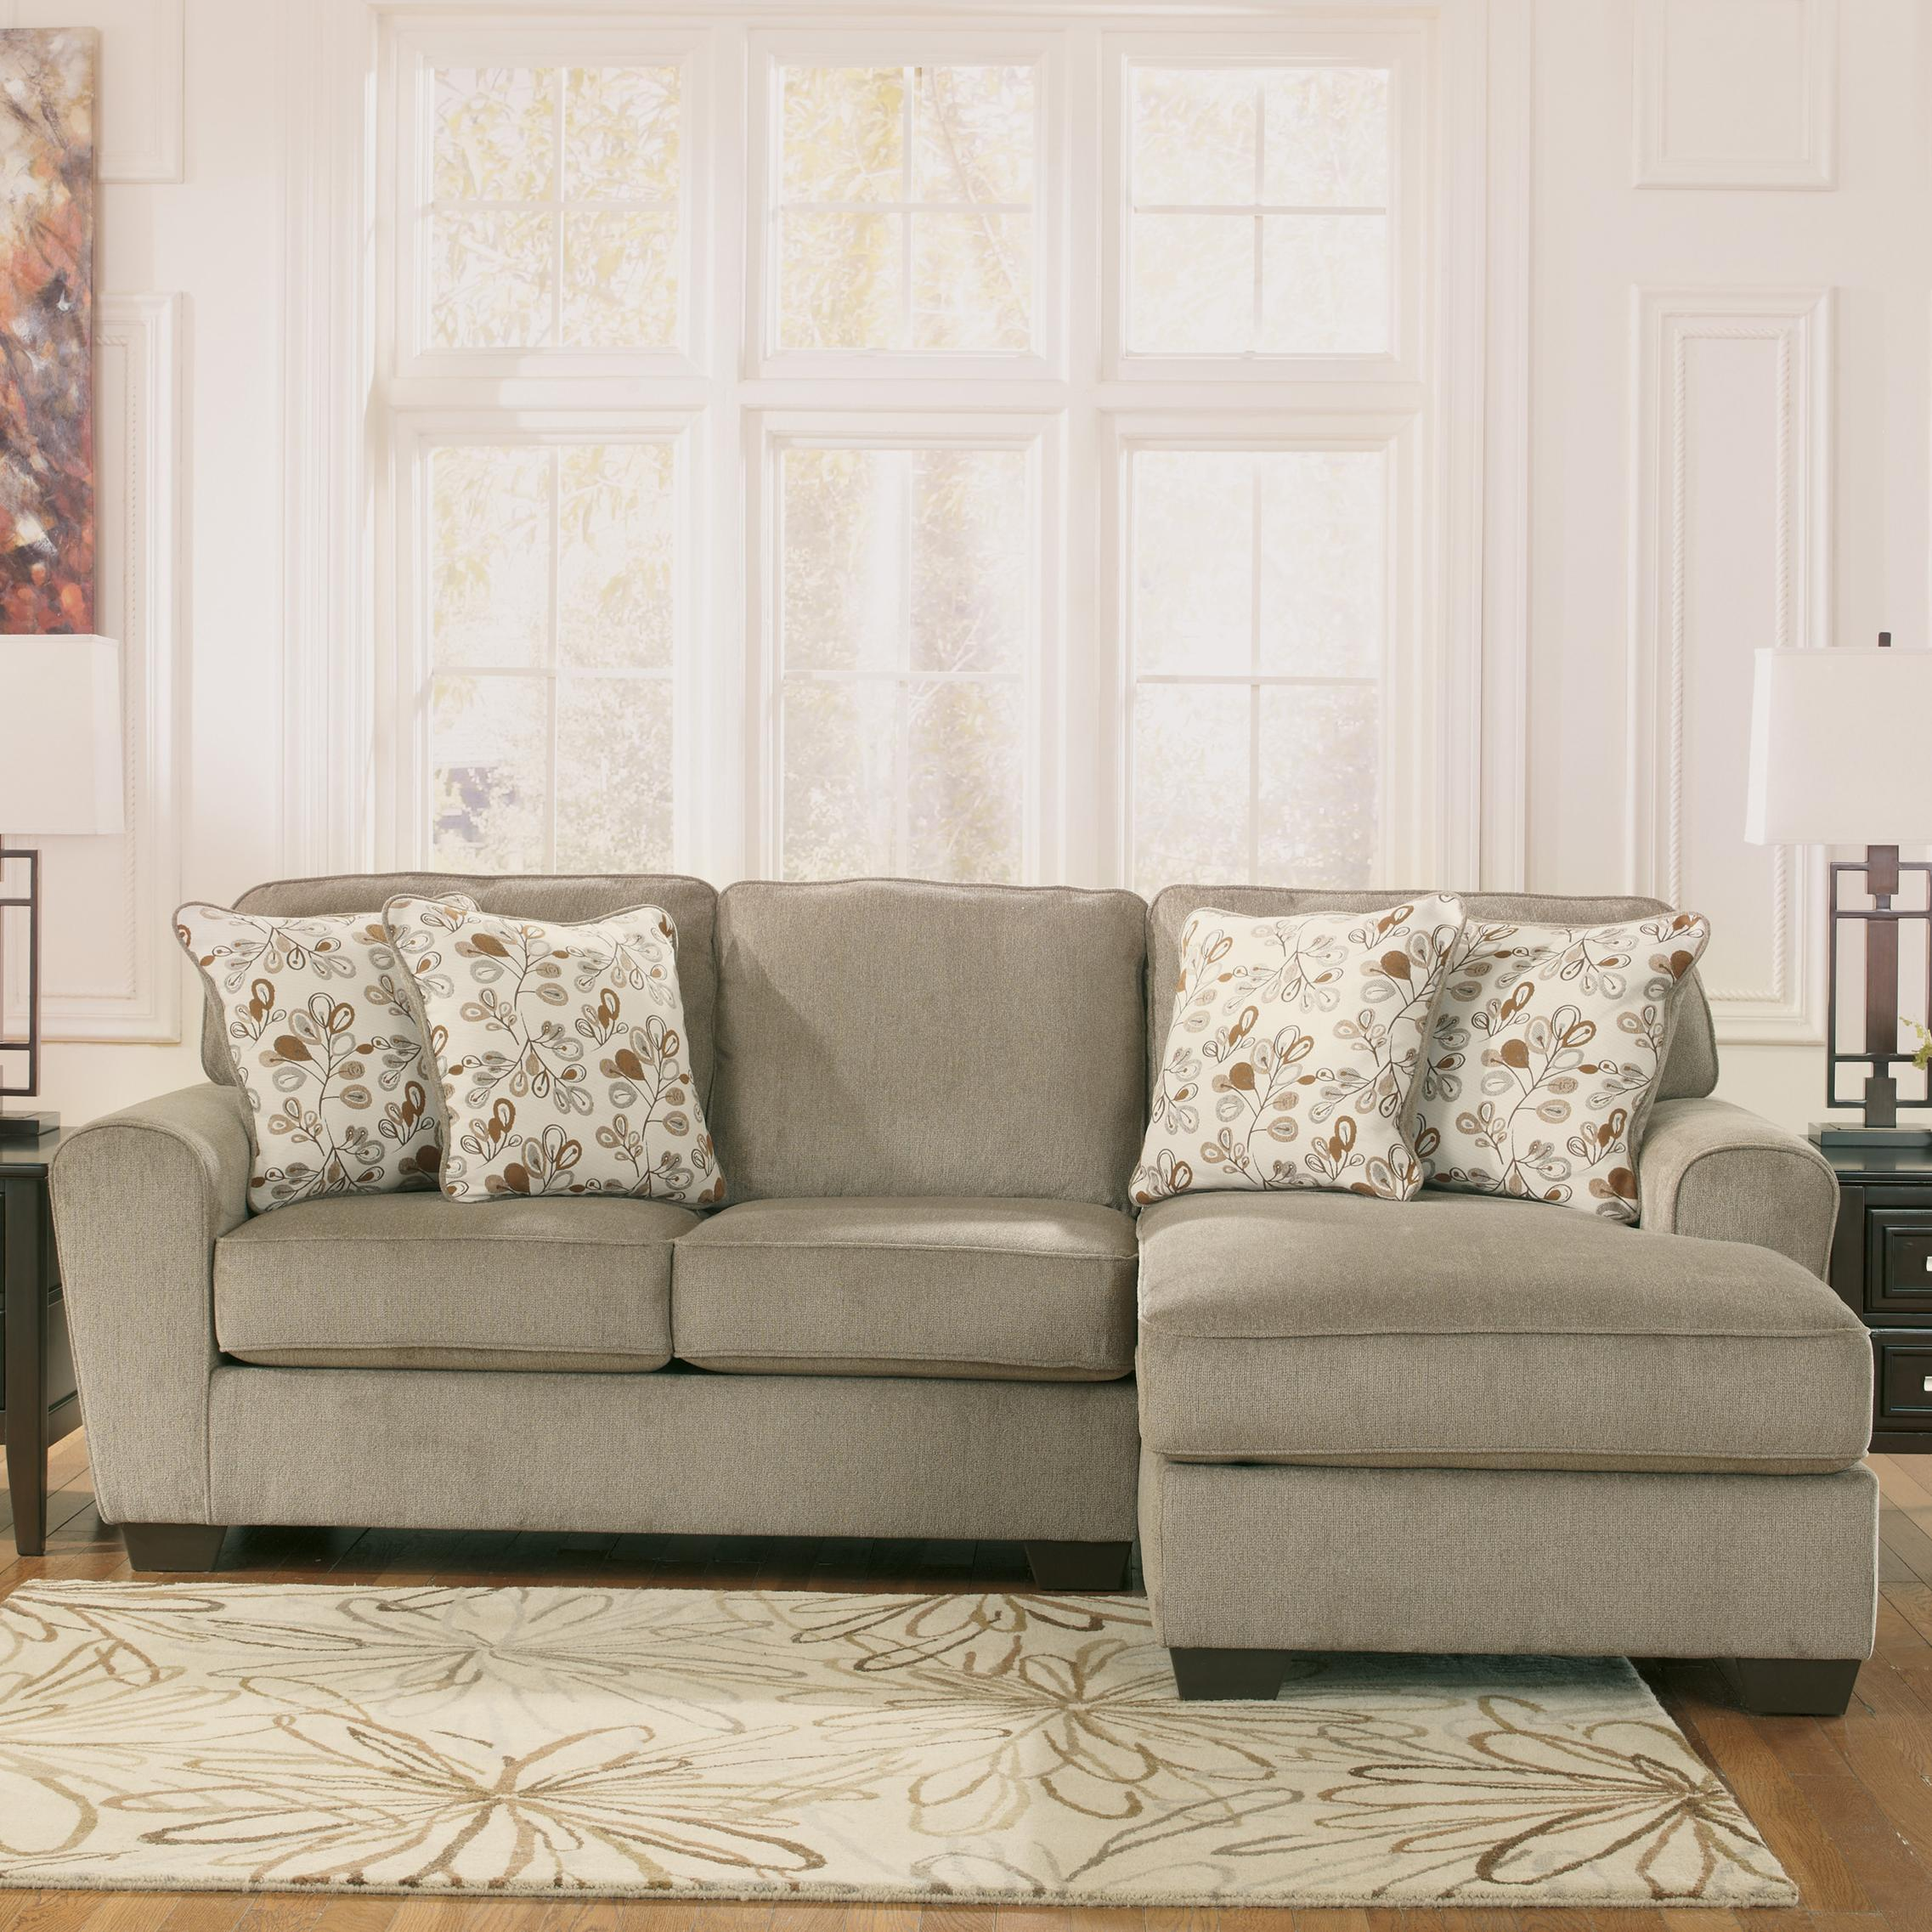 Patola Park - Patina 2-Piece Sectional with Right Chaise by Ashley Furniture at Lapeer Furniture & Mattress Center